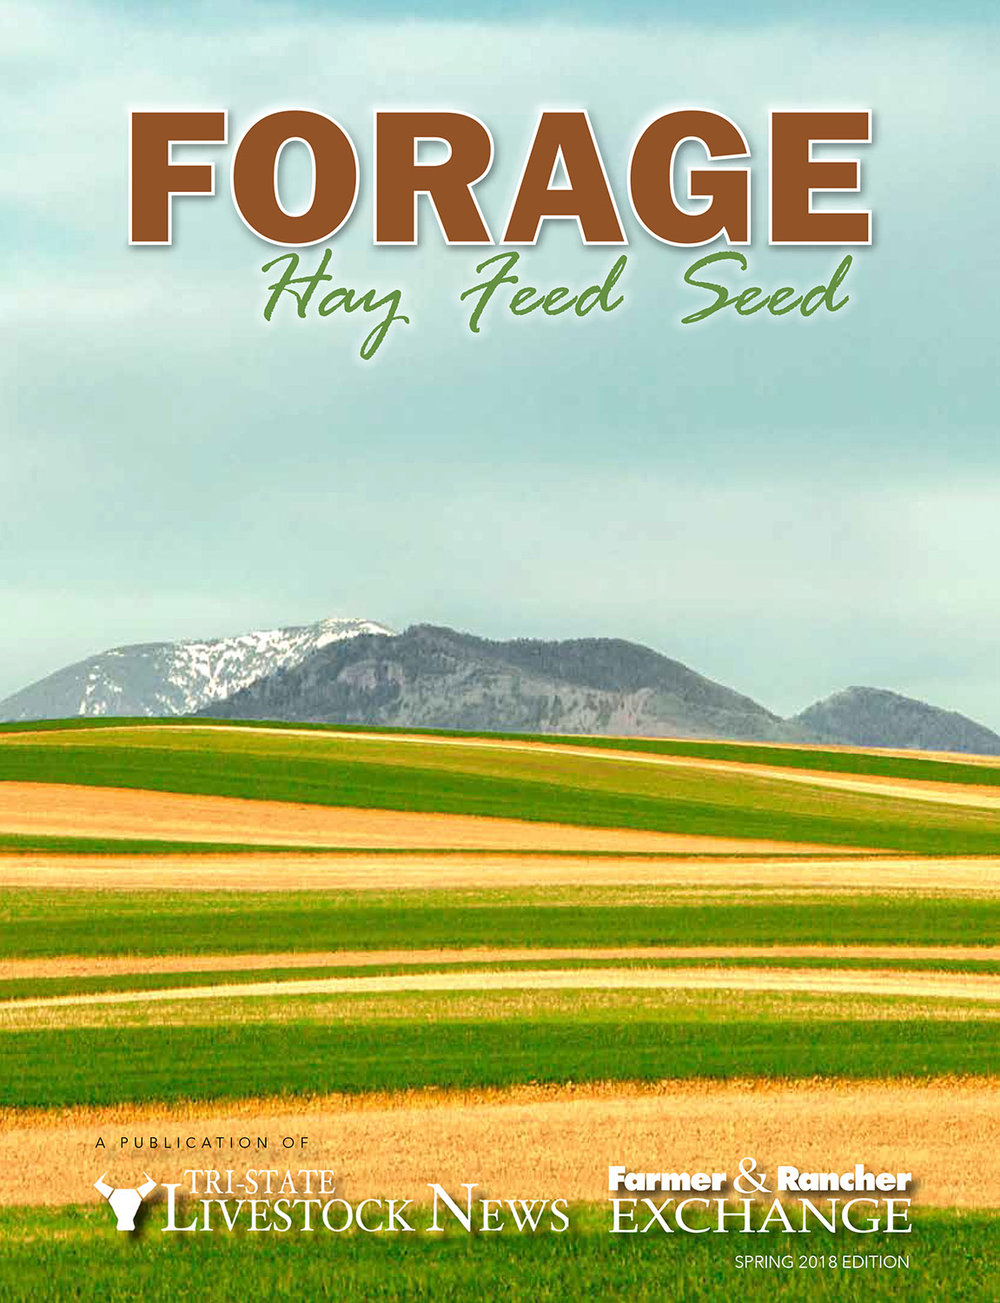 Agricultural Landscape Photo of Strip Crops Appears on Cover of Forage Magazine